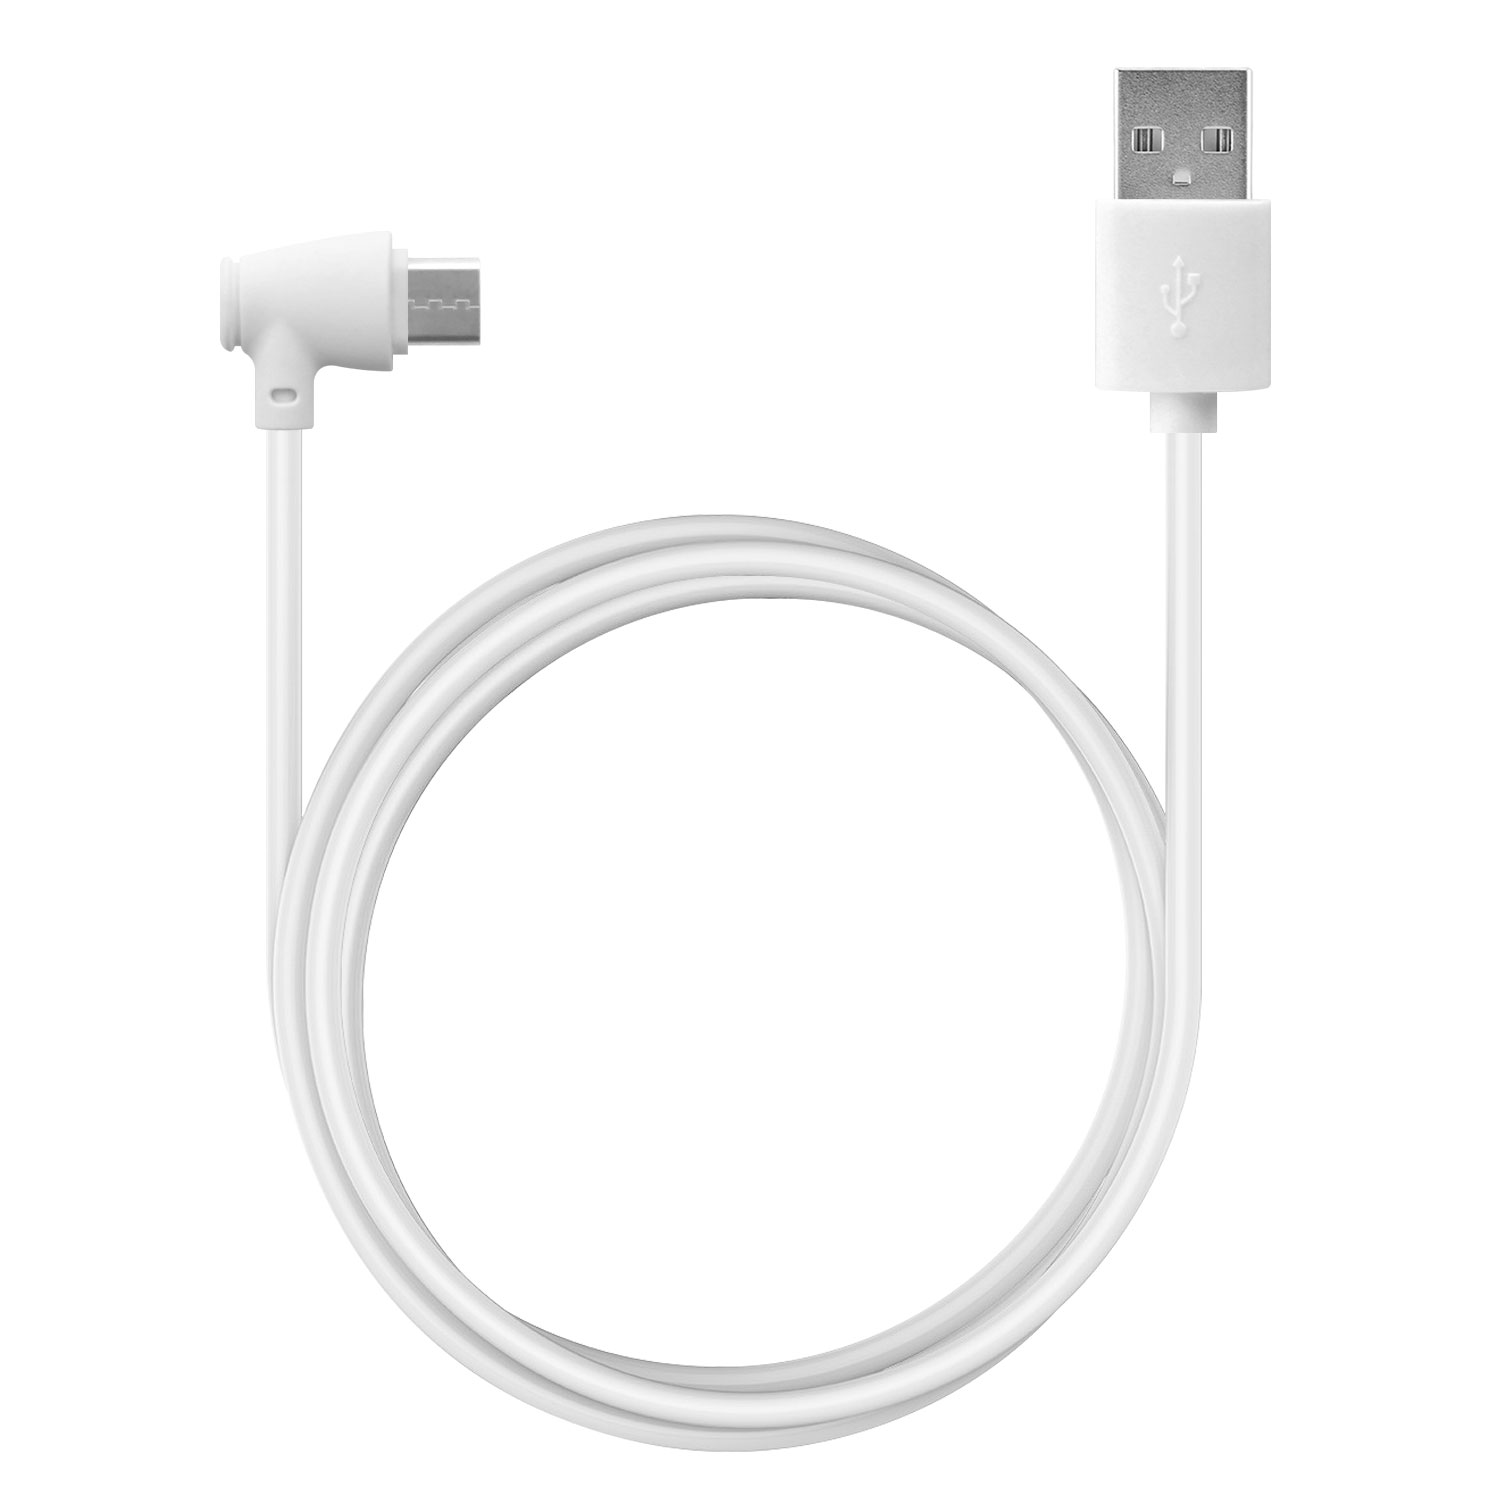 Sony Xperia XZ1 USB Type-C To USB Type-A Data Charging Cable White 3.3ft Angled